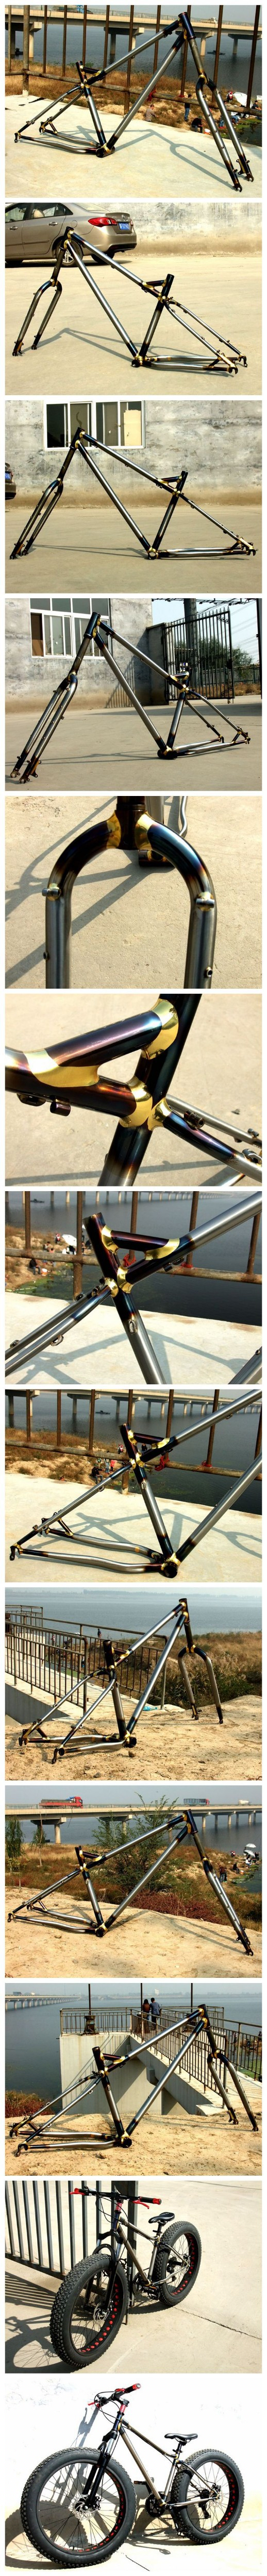 snow-bicycle-frame3